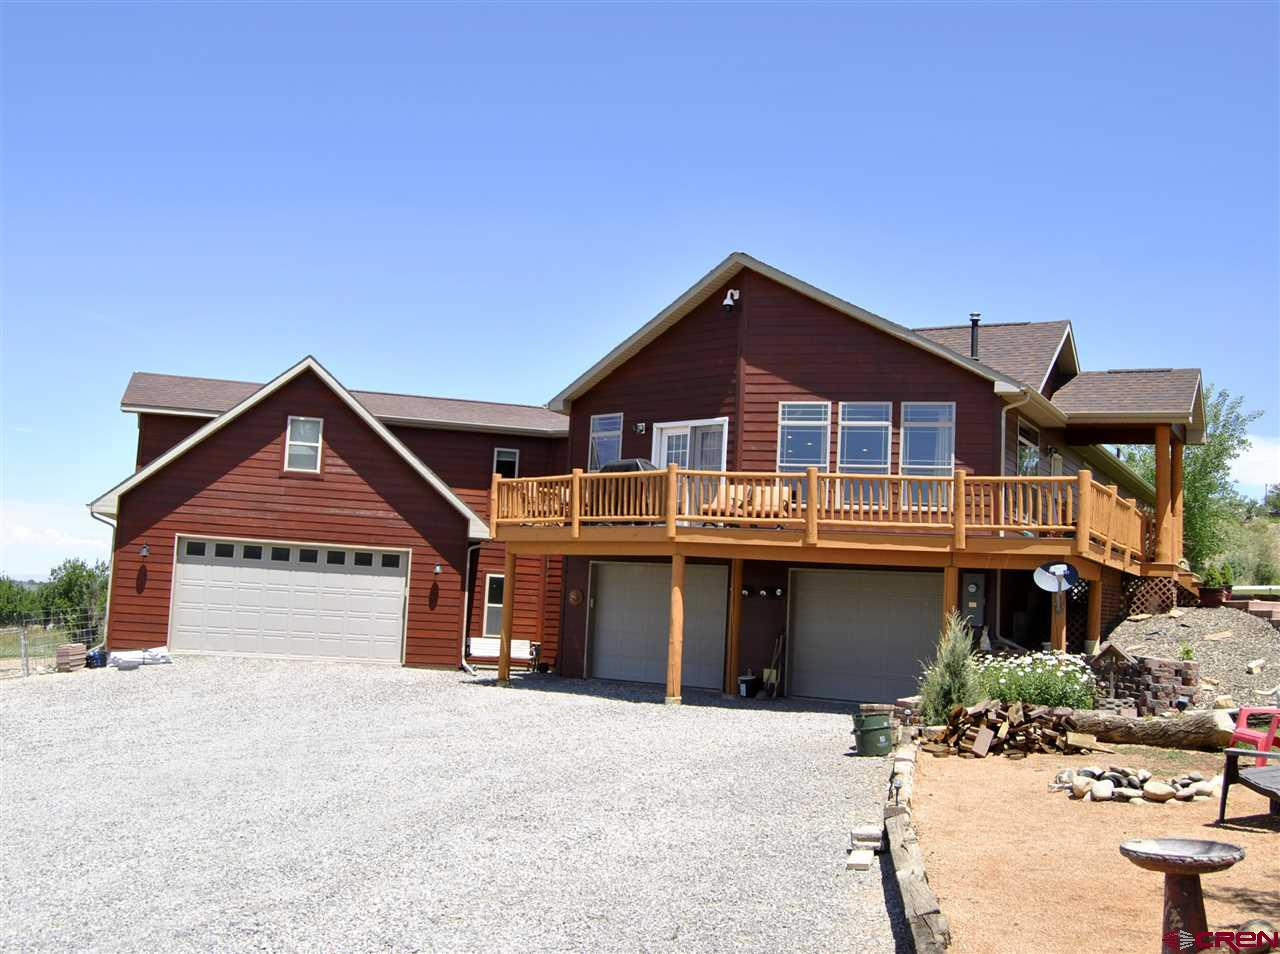 Need Space? NO Covenants? Check out this 5 bedroom, 3 full bath home on 6.894 irrigated acres. There is a 4 car attached garage and a separate 1280 sq.ft. Shop. Now to talk about the inside features. This home has had some remodel in 2018 which included finishing the interior of the garages and completing the bonus room over the garage which increased the home by 352 sq.ft. This house also boast of a Cook's Kitchen with a large island and prep sink, Corian counter-tops, stainless appliances and gorgeous slate floors. The master suite comes equipped to completely relax by its own fireplace after taking a long bath in the jetted tub which is included in the on-suite along with a double sink vanity. As you can see there are too many amazing features to list so come take a look at this incredible home.